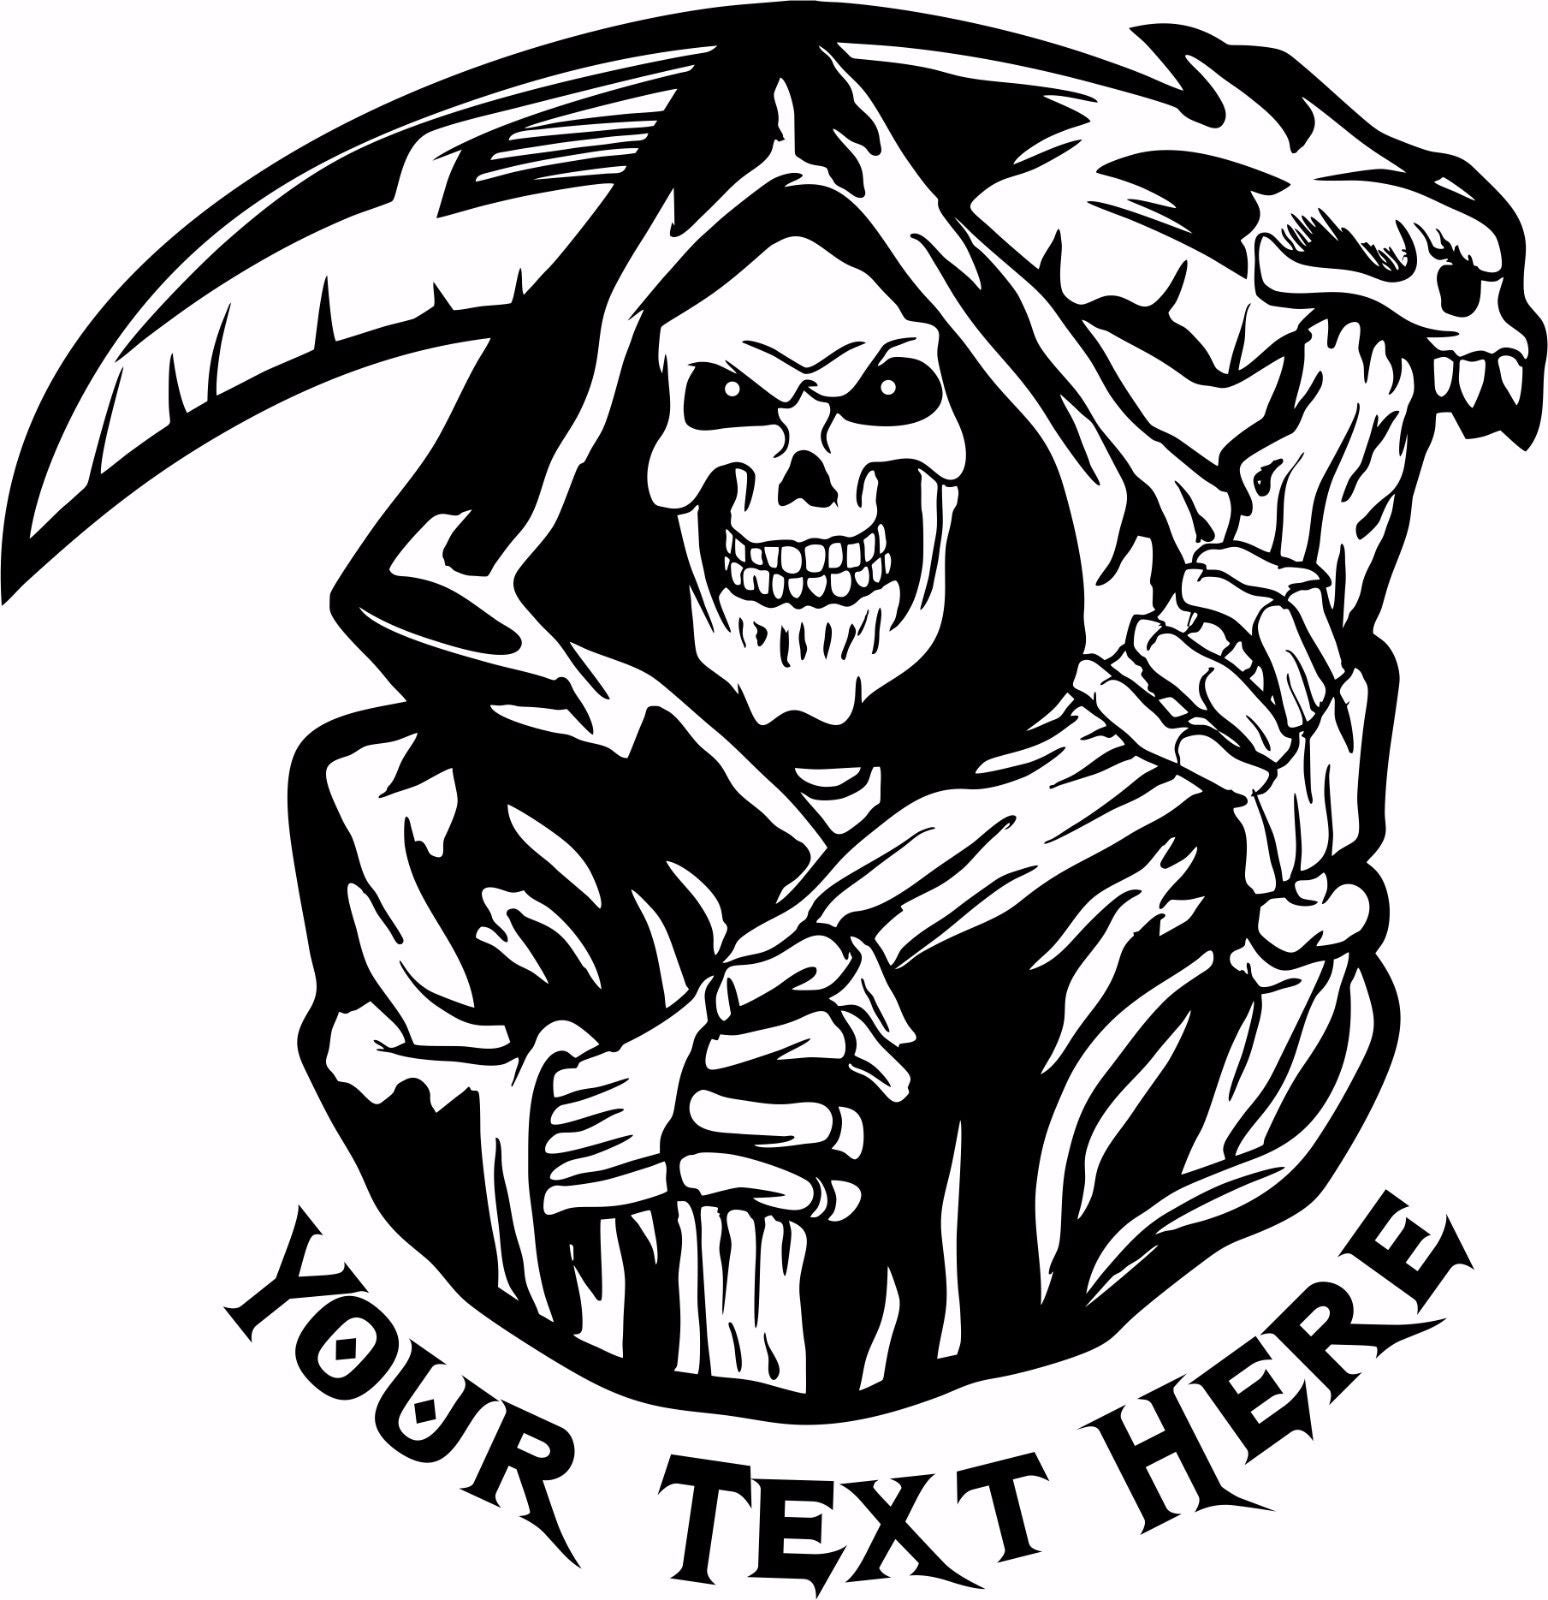 "Grim Reaper Skull Custom Text Business Name Car Truck Window Vinyl Decal Sticker - 18"" x 18"""